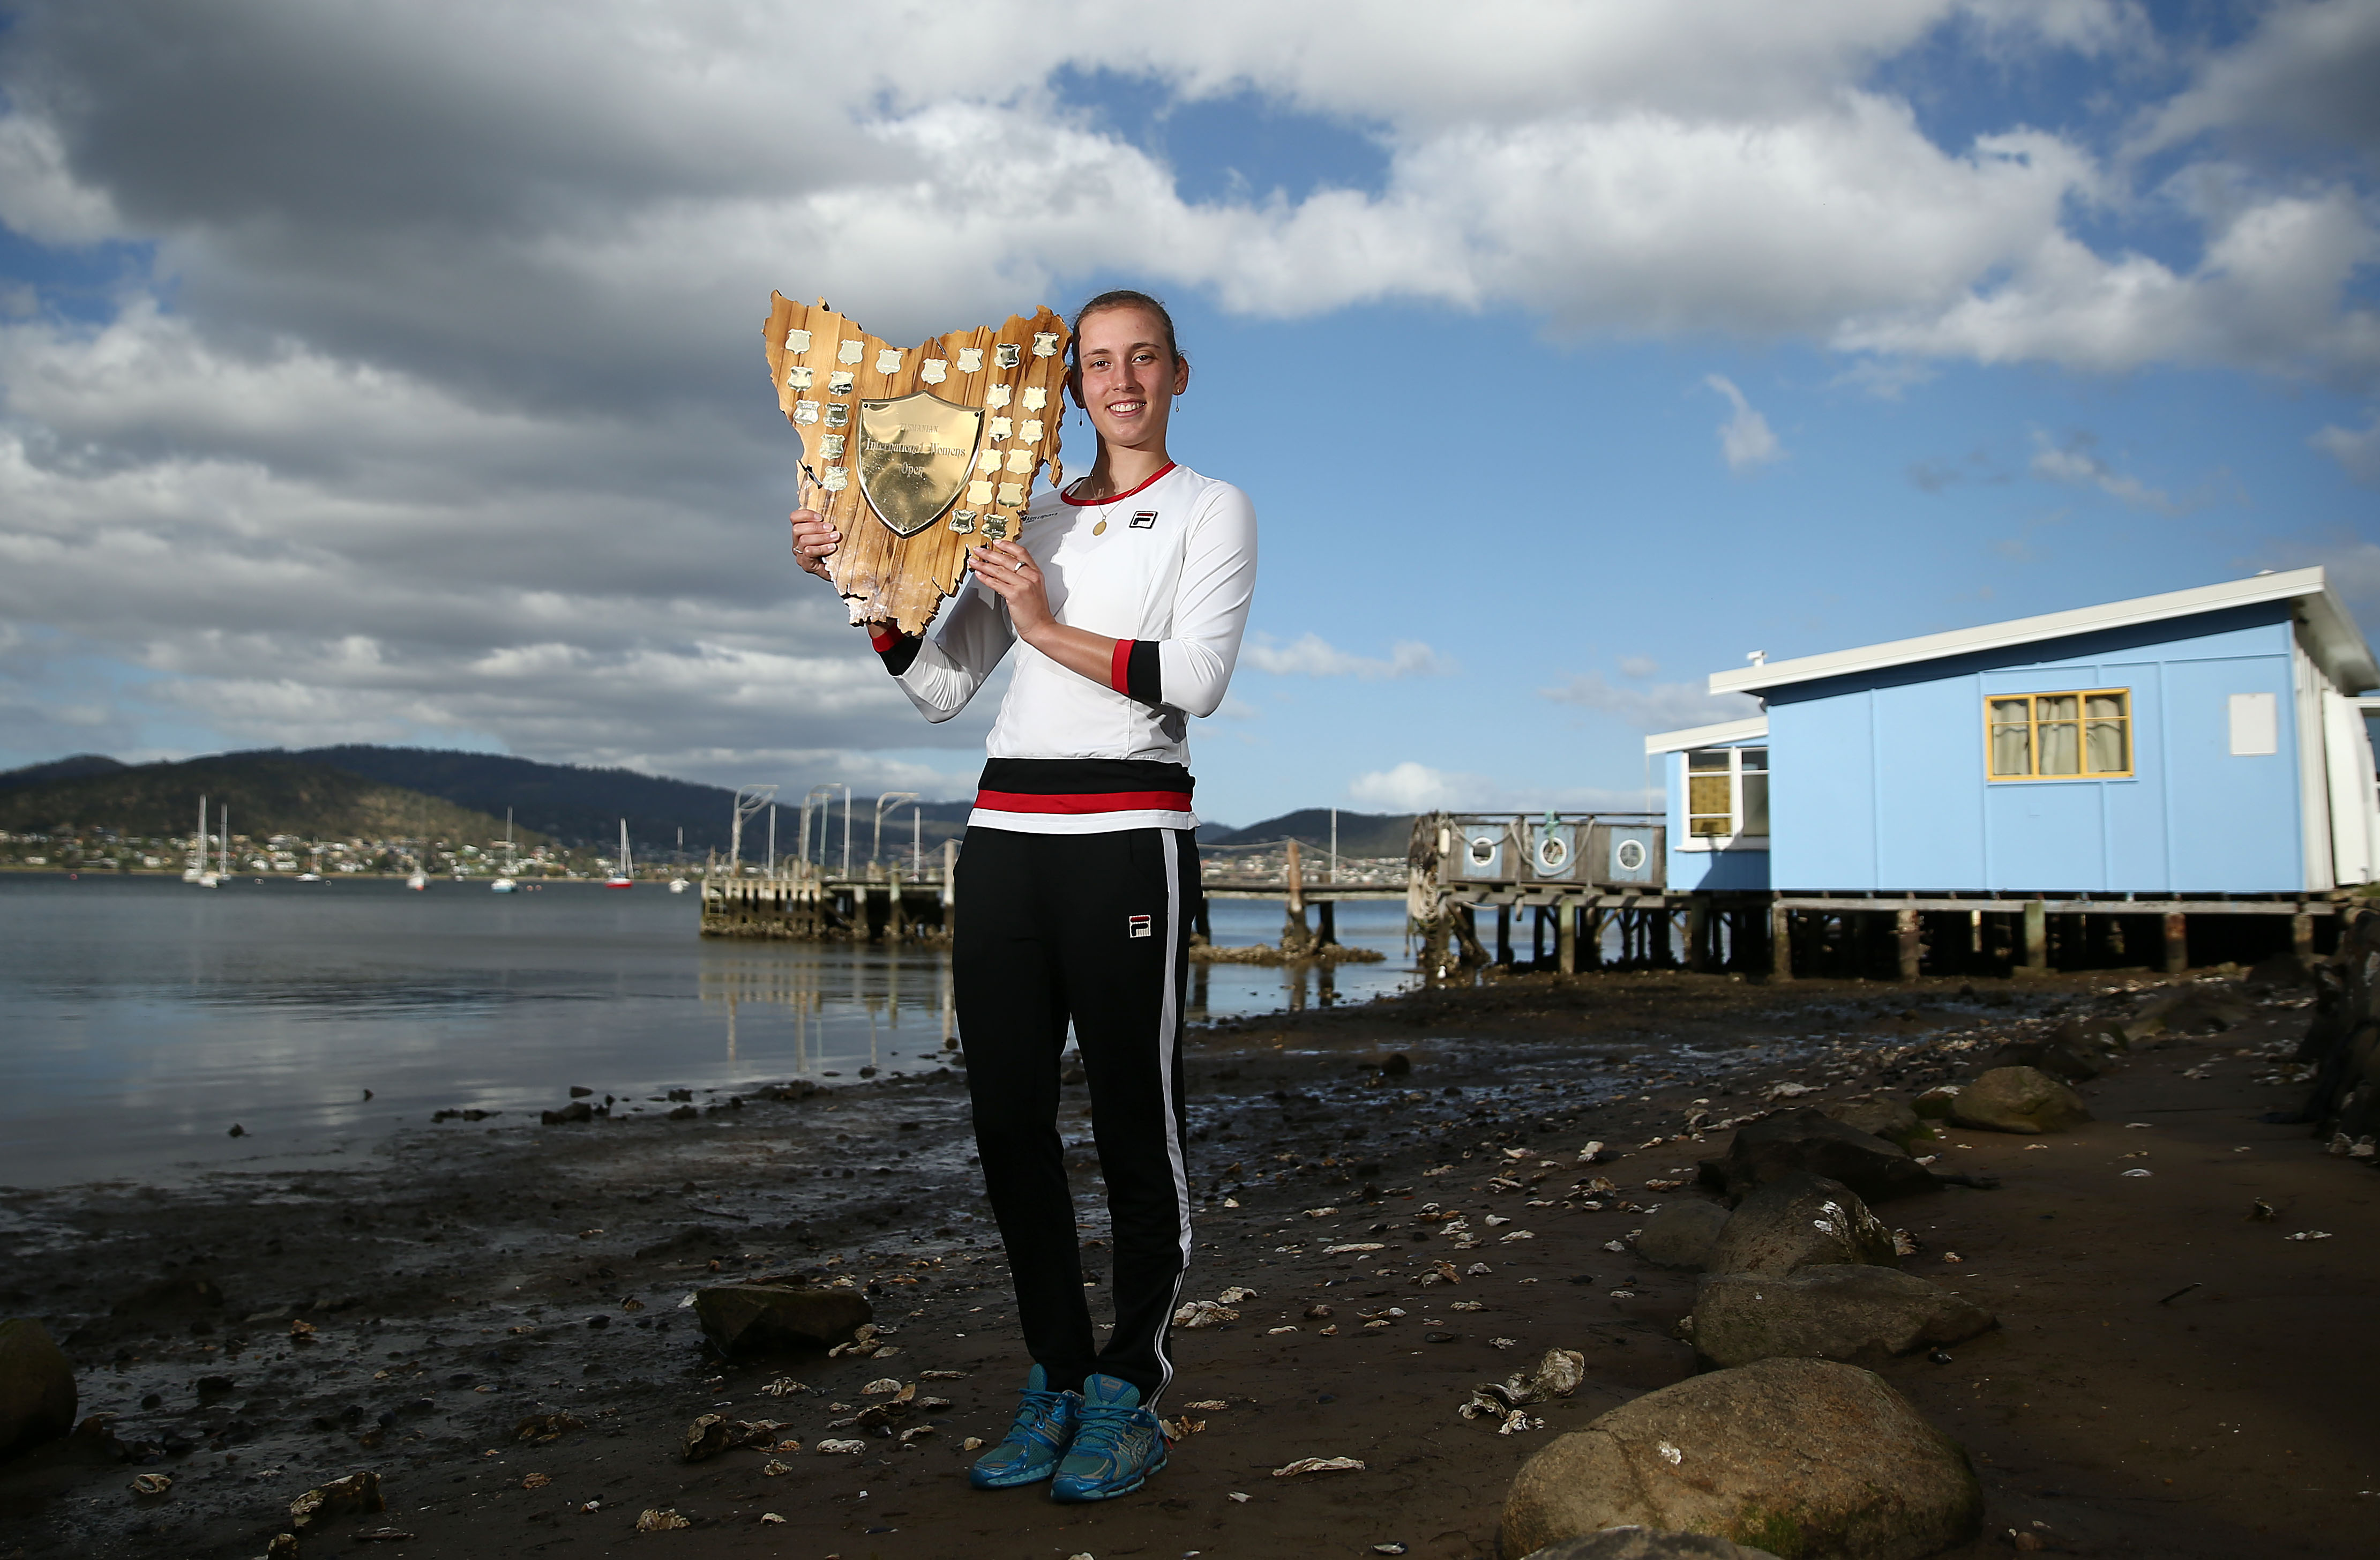 BREAKTHROUGH: Hobart will always hold a special place in Elise Mertens' heart - the city where she won her first WTA title; Getty Images